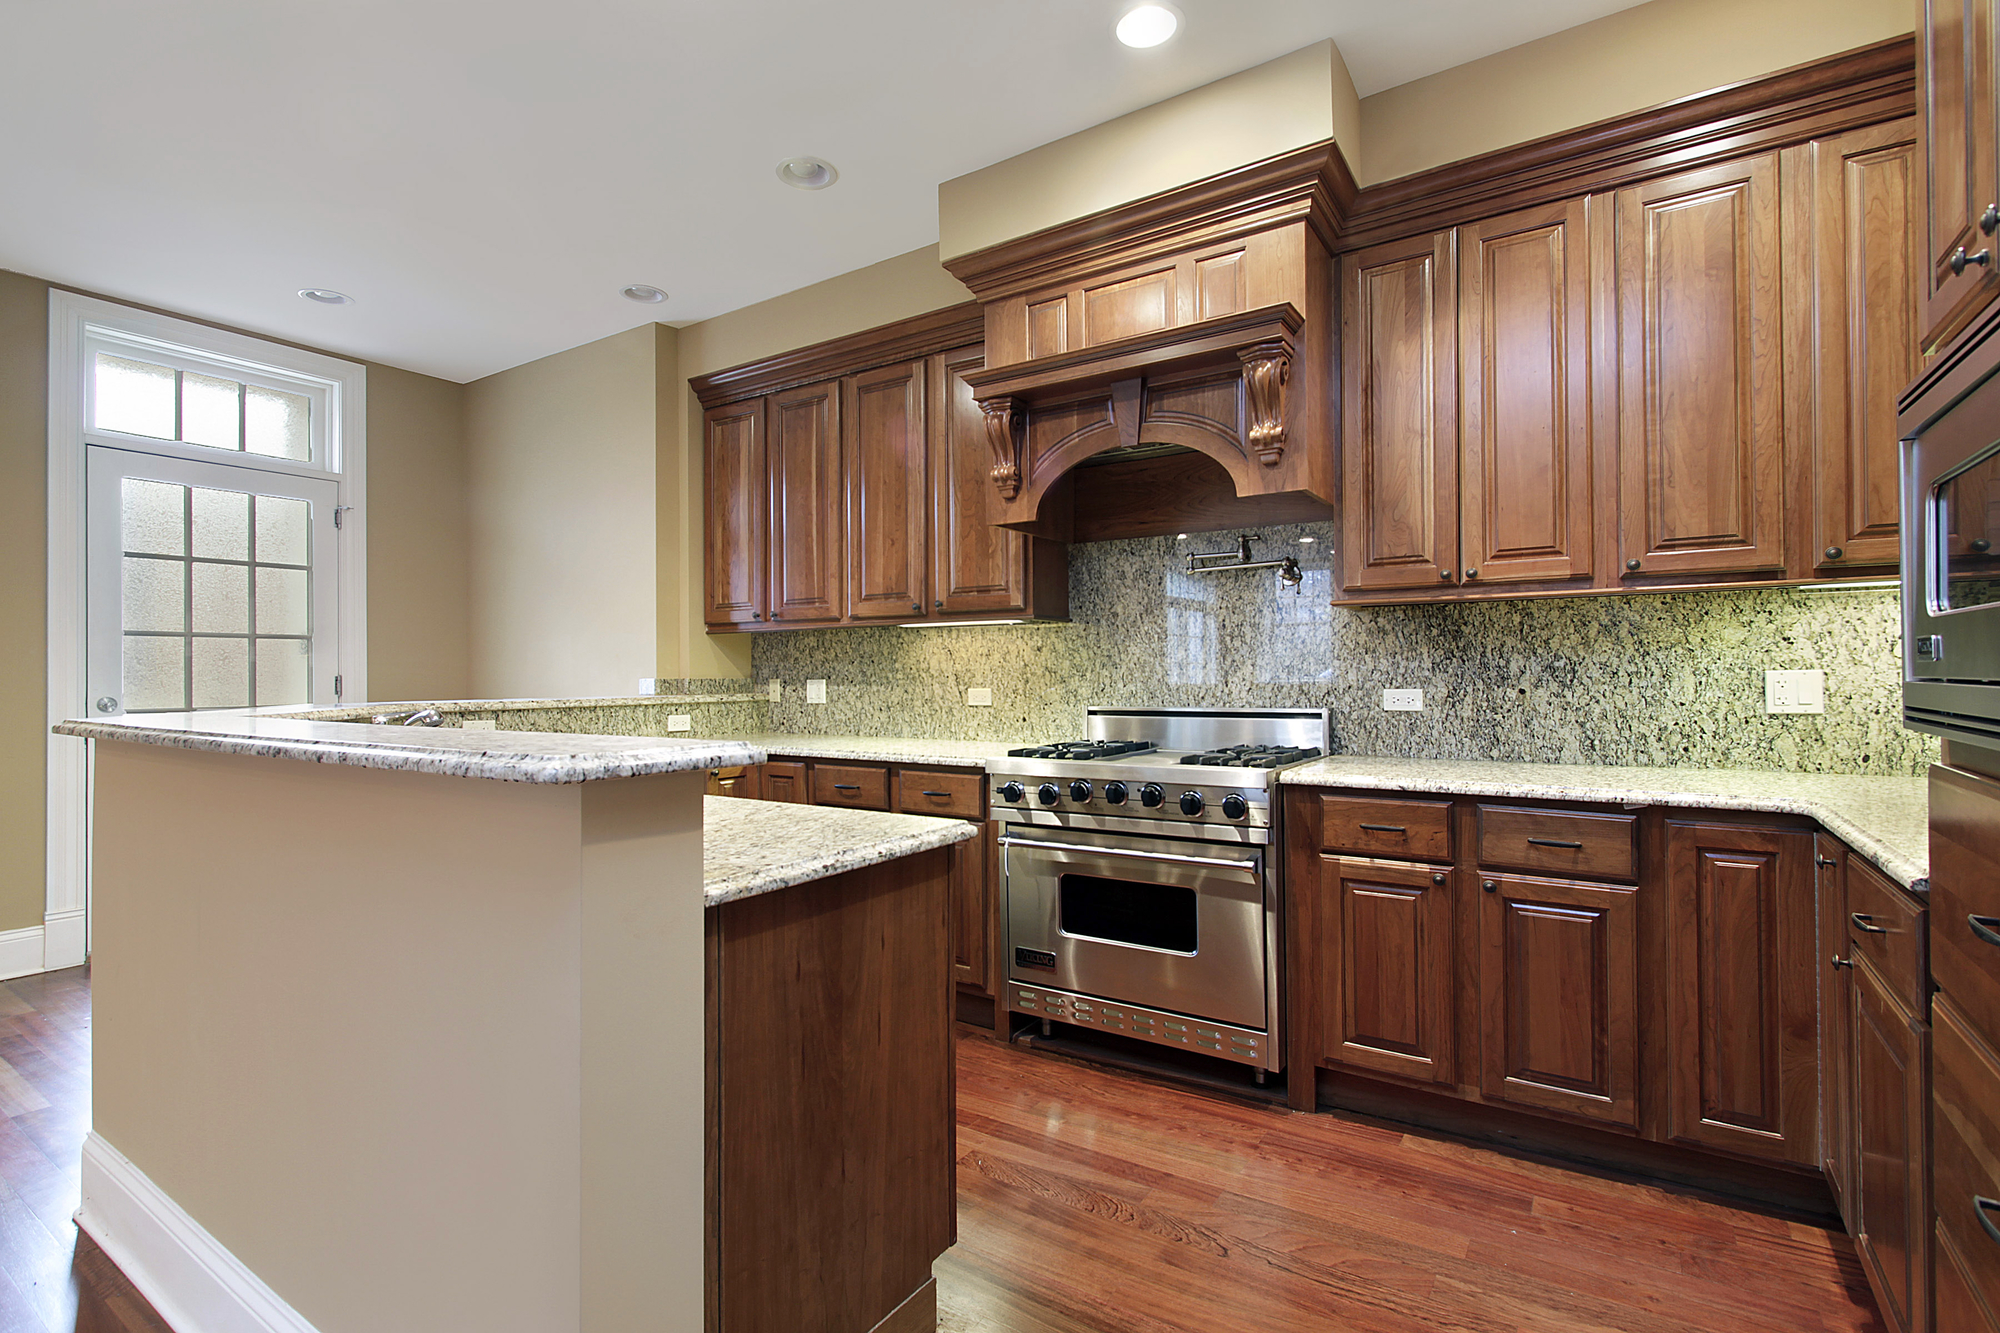 5 Affordable Kitchen Remodeling Ideas Before The Holiday